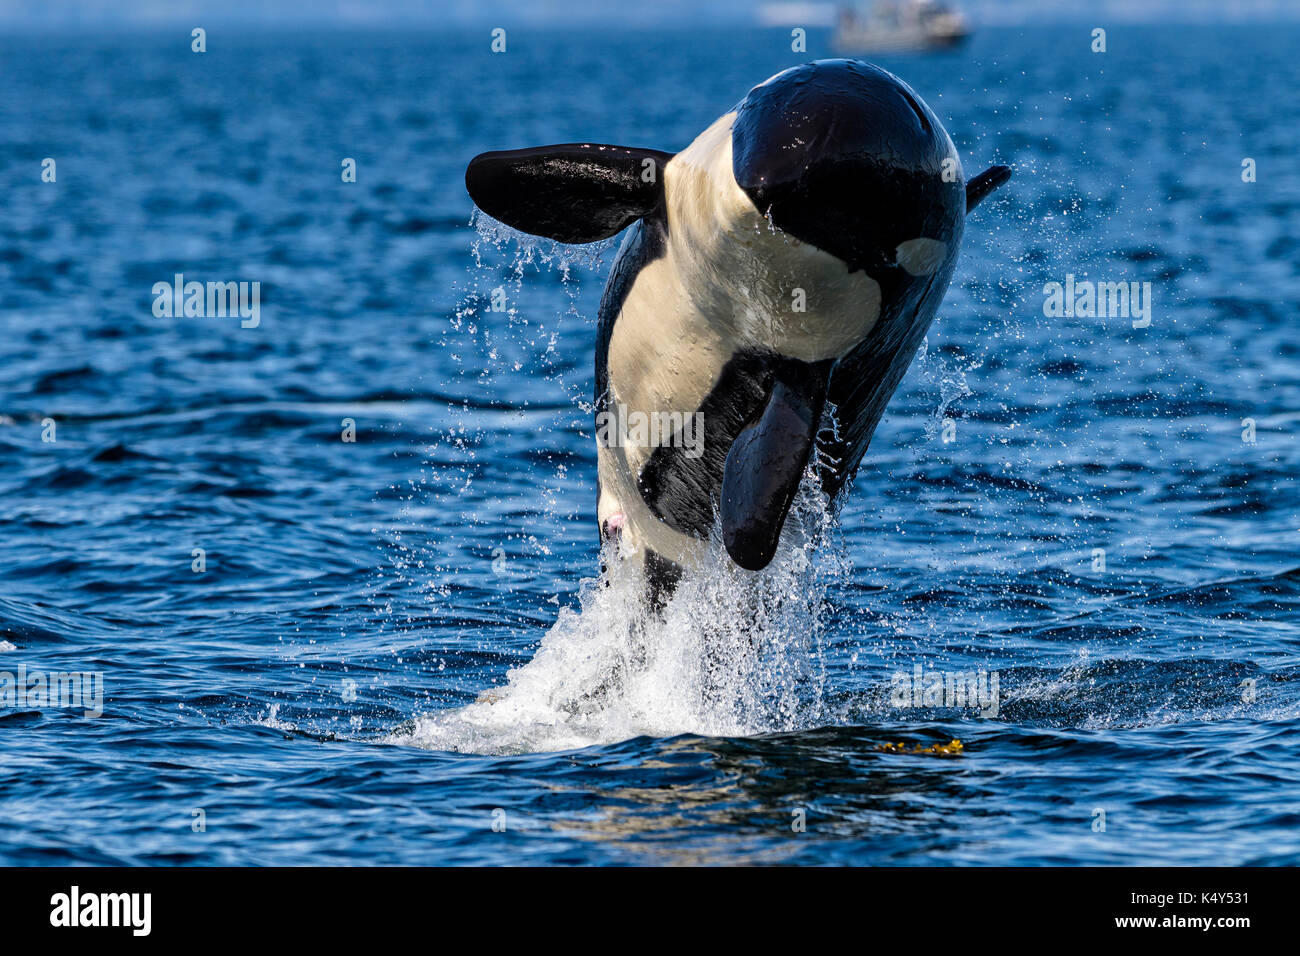 Northern resident killeer whale breaching in front of Swanson Island off Northern Vancouver Island, British Columbia, Canada. - Stock Image